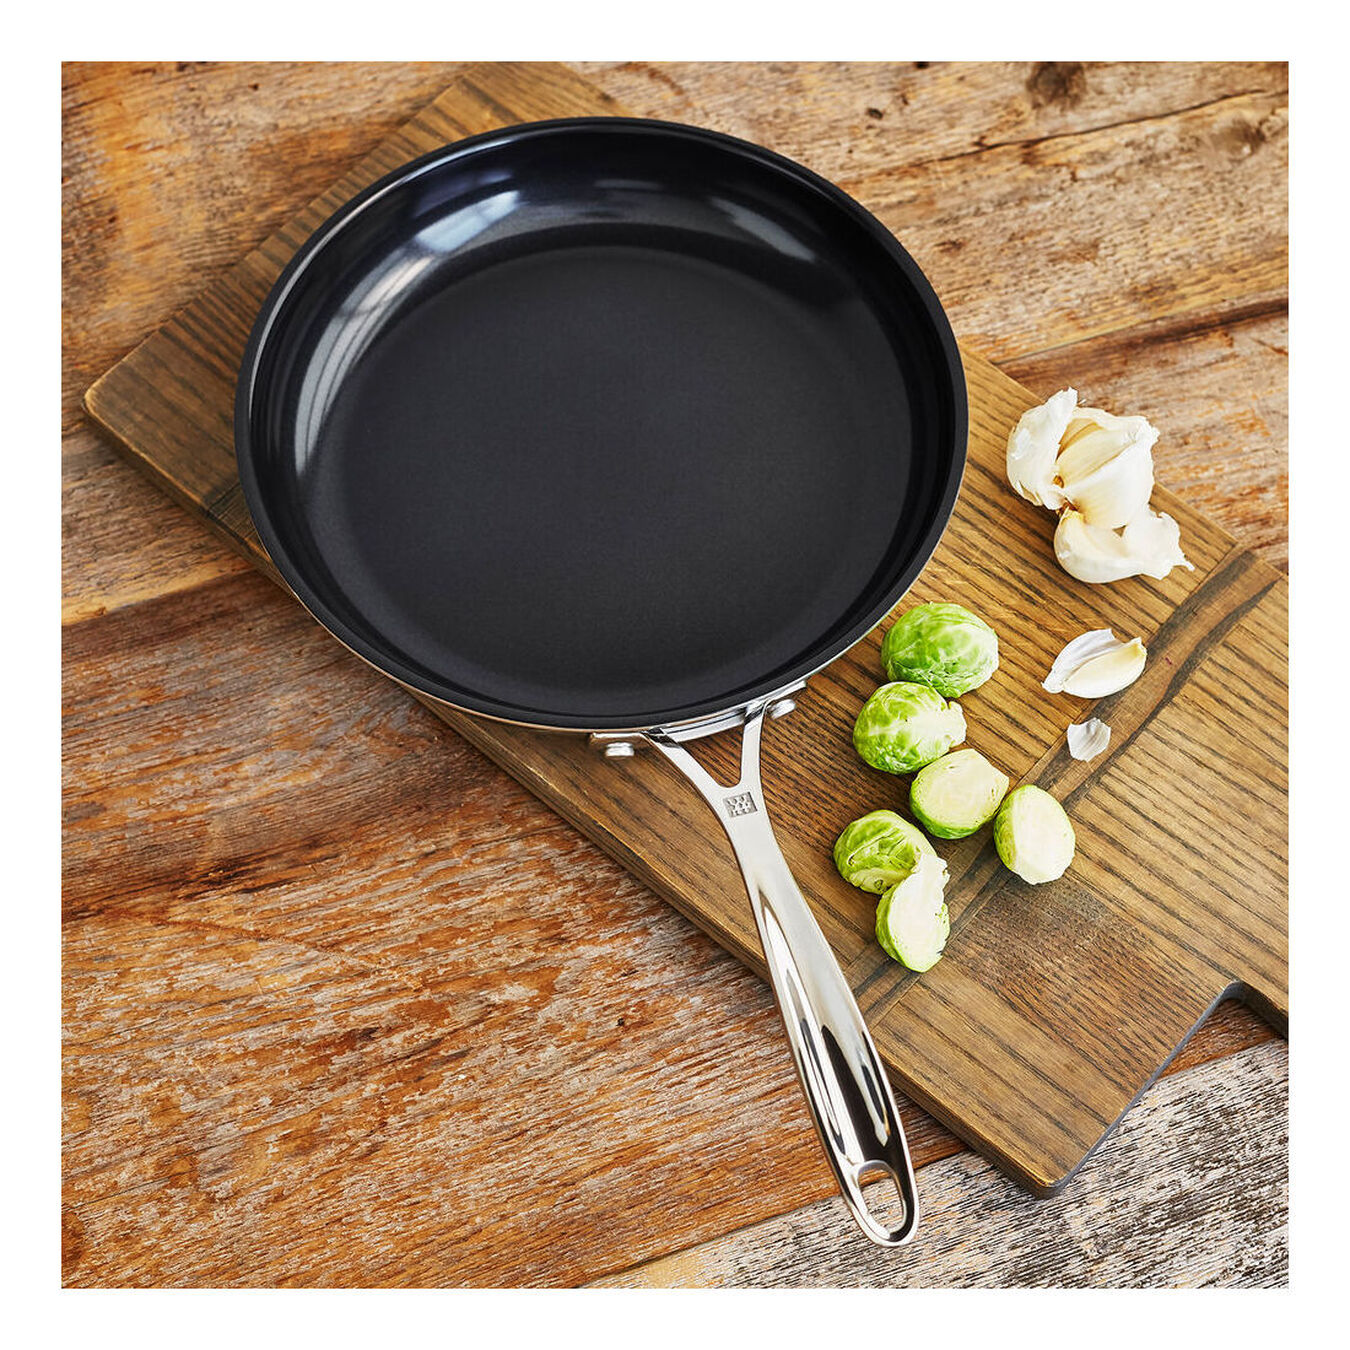 10-inch, 18/10 Stainless Steel, Non-stick, Frying pan,,large 1